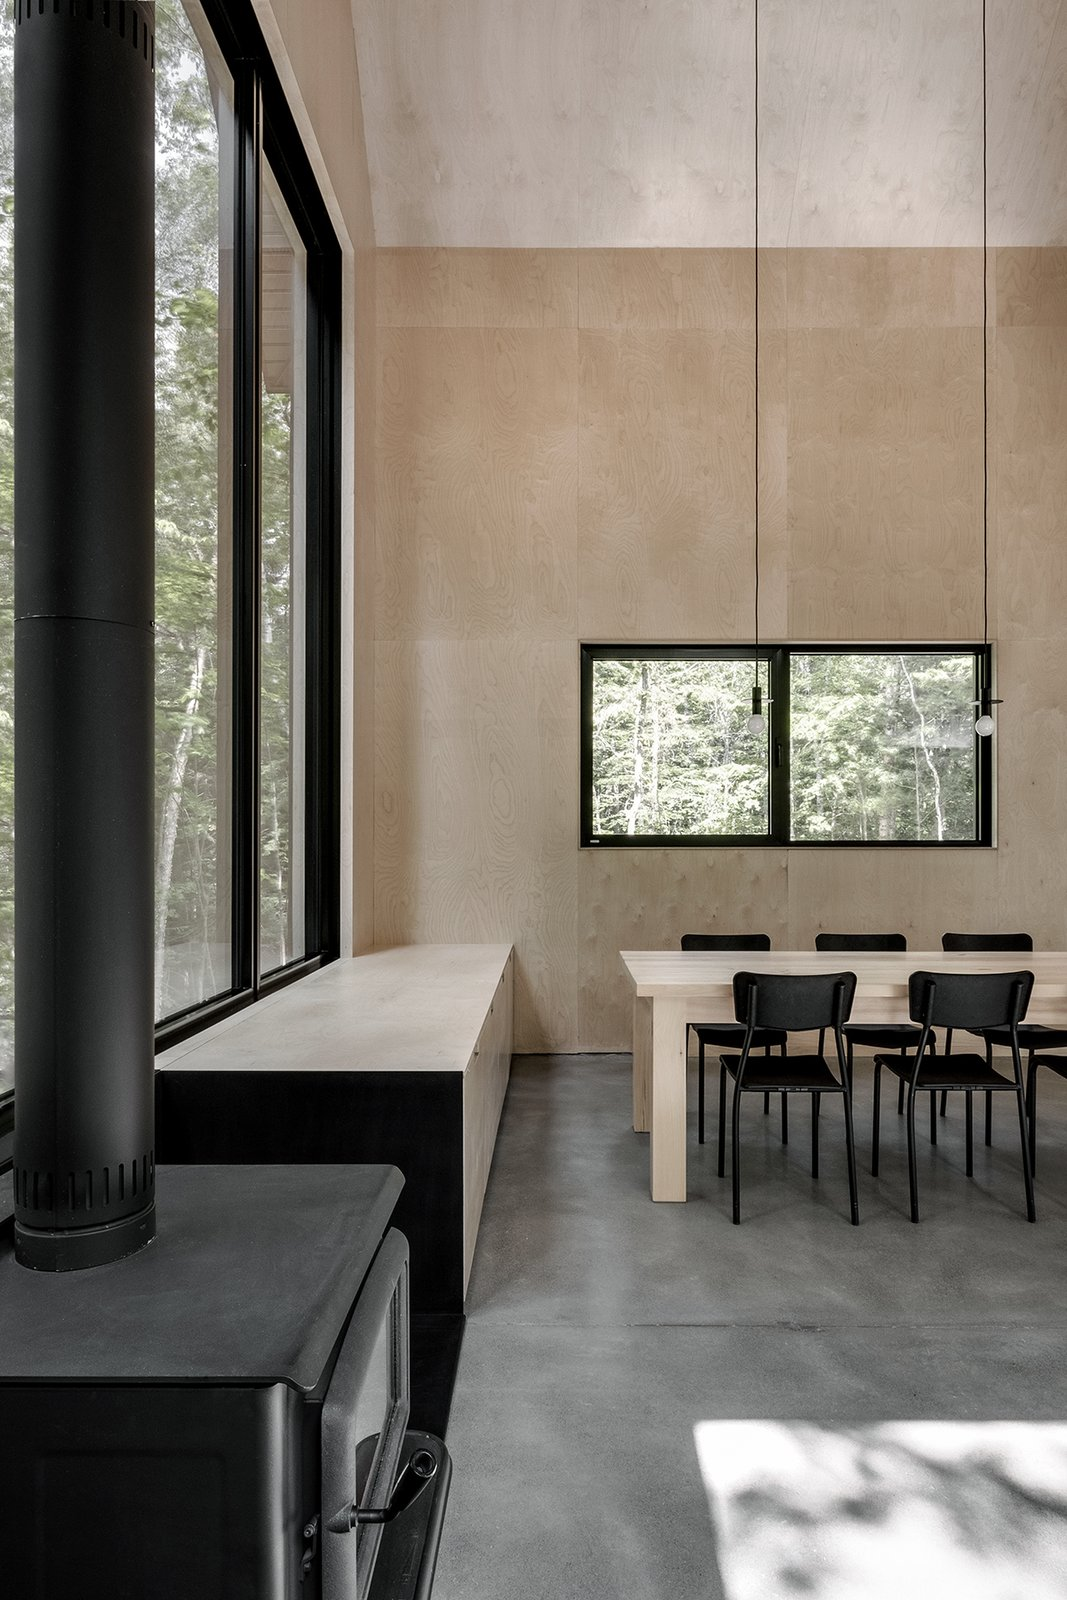 Dining Room, Wood Burning Fireplace, Concrete Floor, Ceiling Lighting, Chair, Table, and Storage  Best Photos from A Lofty Nature Retreat in Quebec Inspired by Nordic Architecture